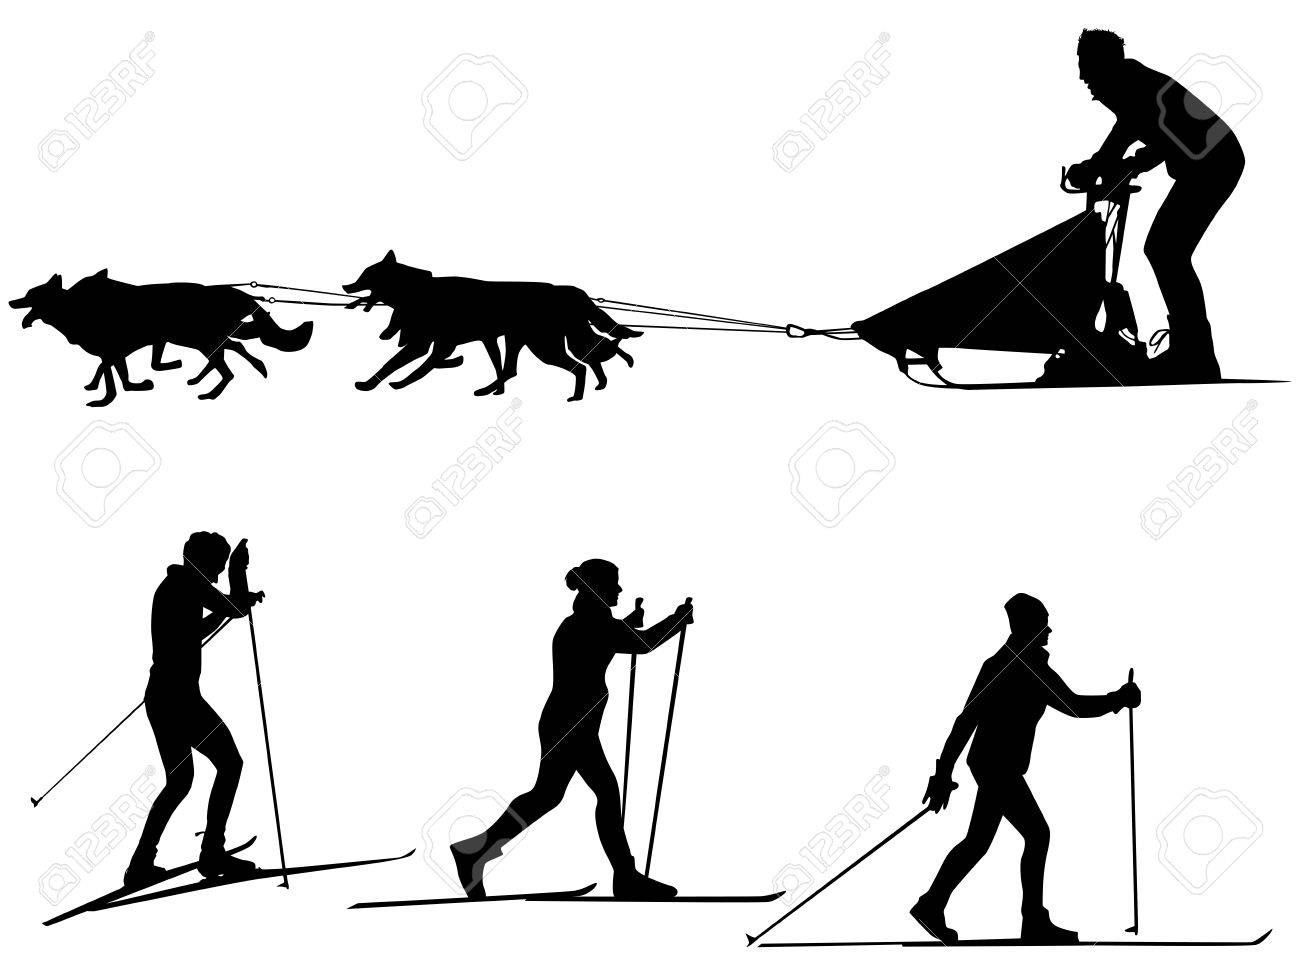 Cross Country Skiing And Dog Sledding Sport Silhouette Team Of Dogs Stockfoto